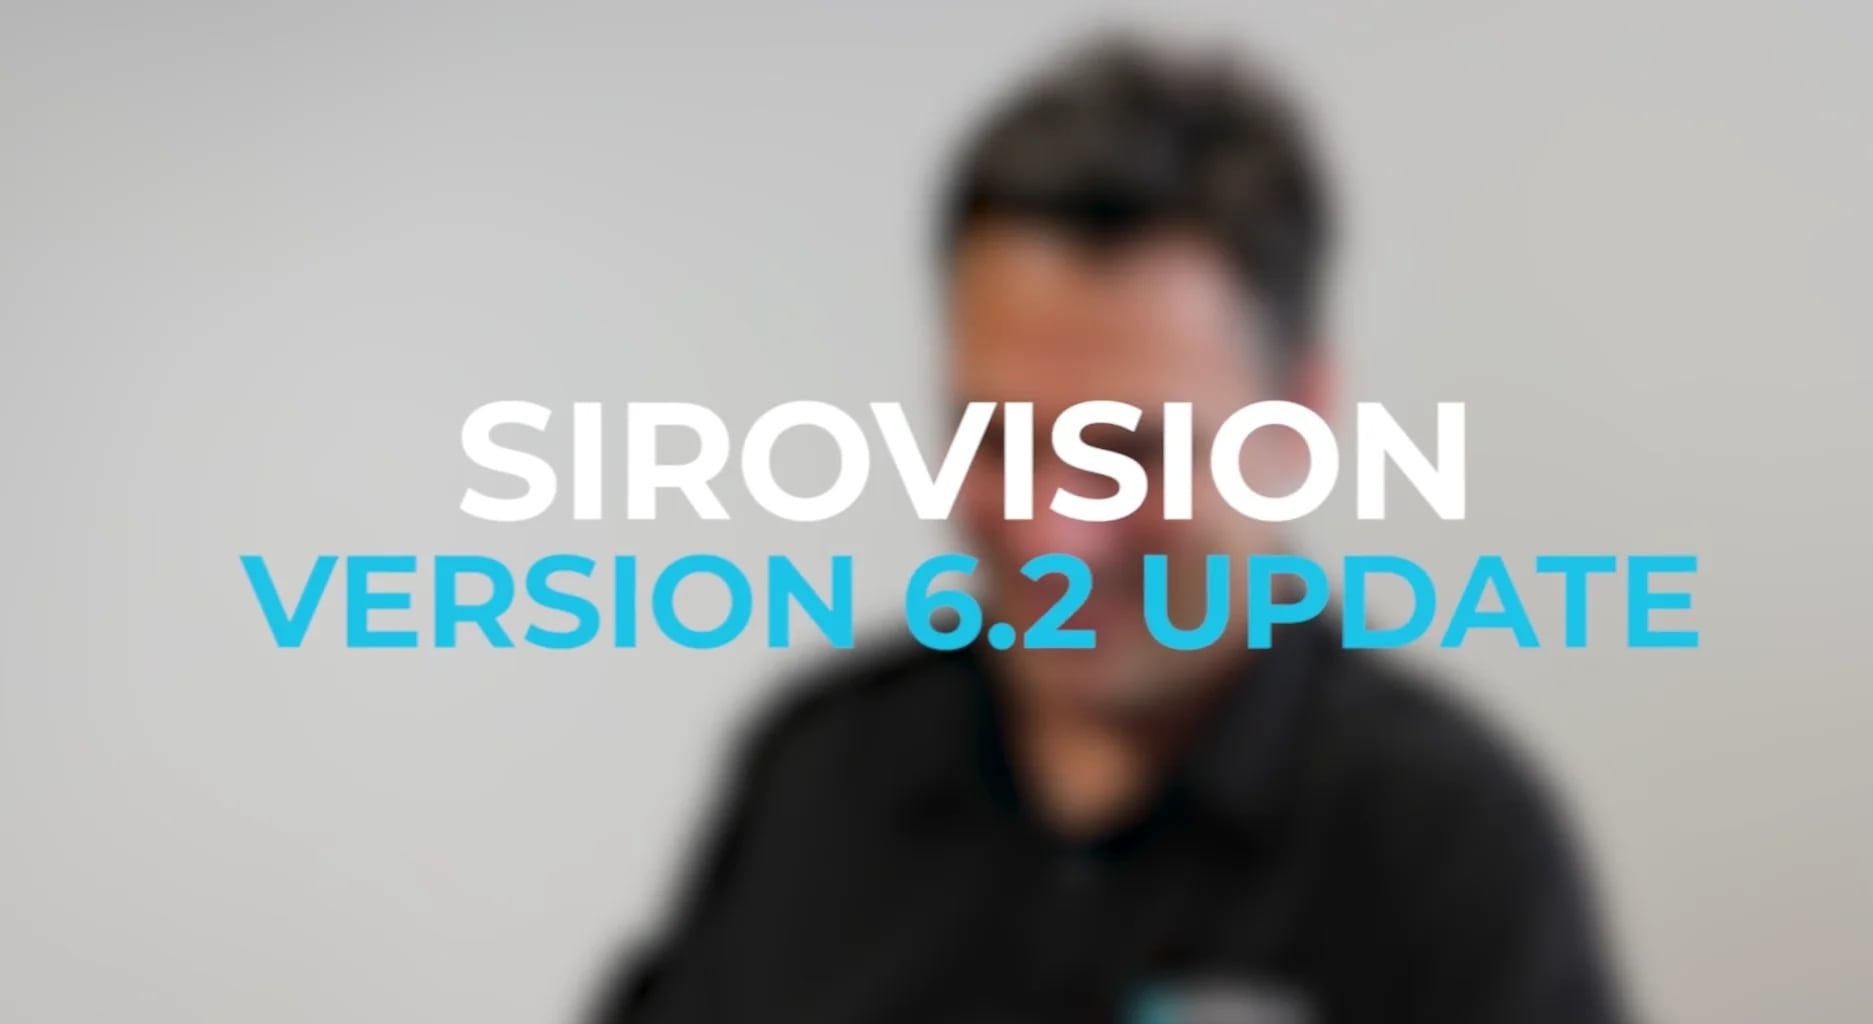 Title screen of the interview video with Sirovision Product Manager, Ian Anderson, explaining the new features in Sirovision 6.2 - geological mapping software